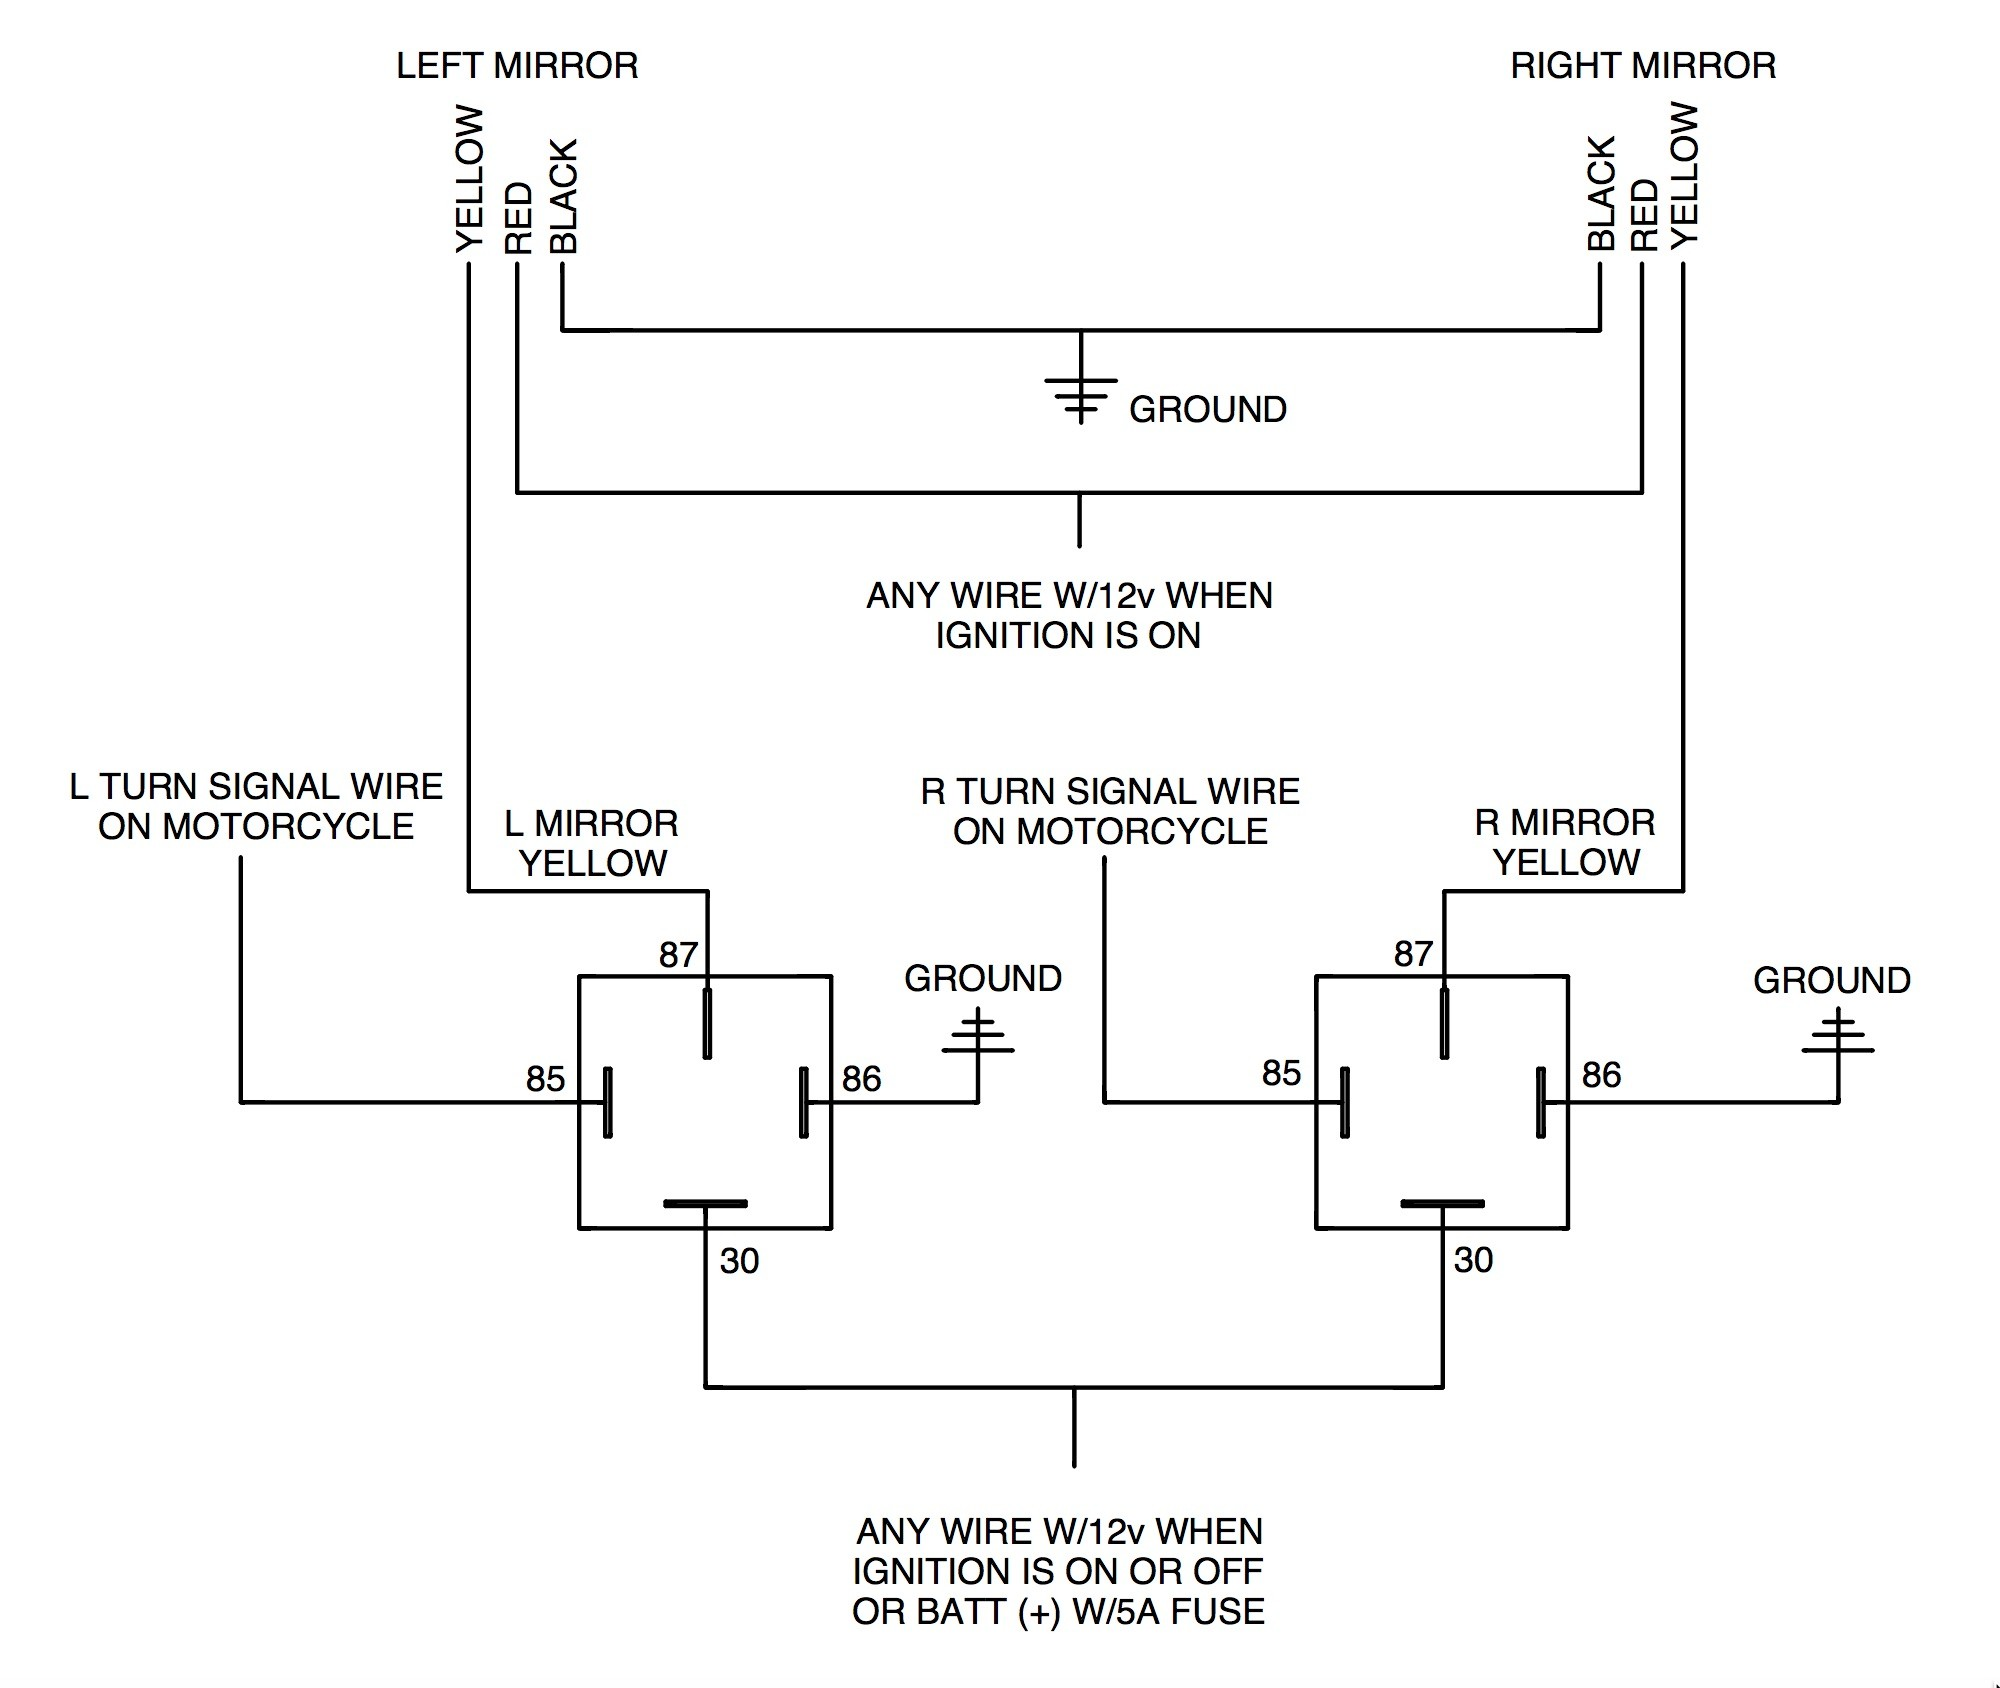 Signal Light Flasher Wiring Diagram Adding Rivco Led Mirrors to A Victory Cross Country Motorcycle Of Signal Light Flasher Wiring Diagram